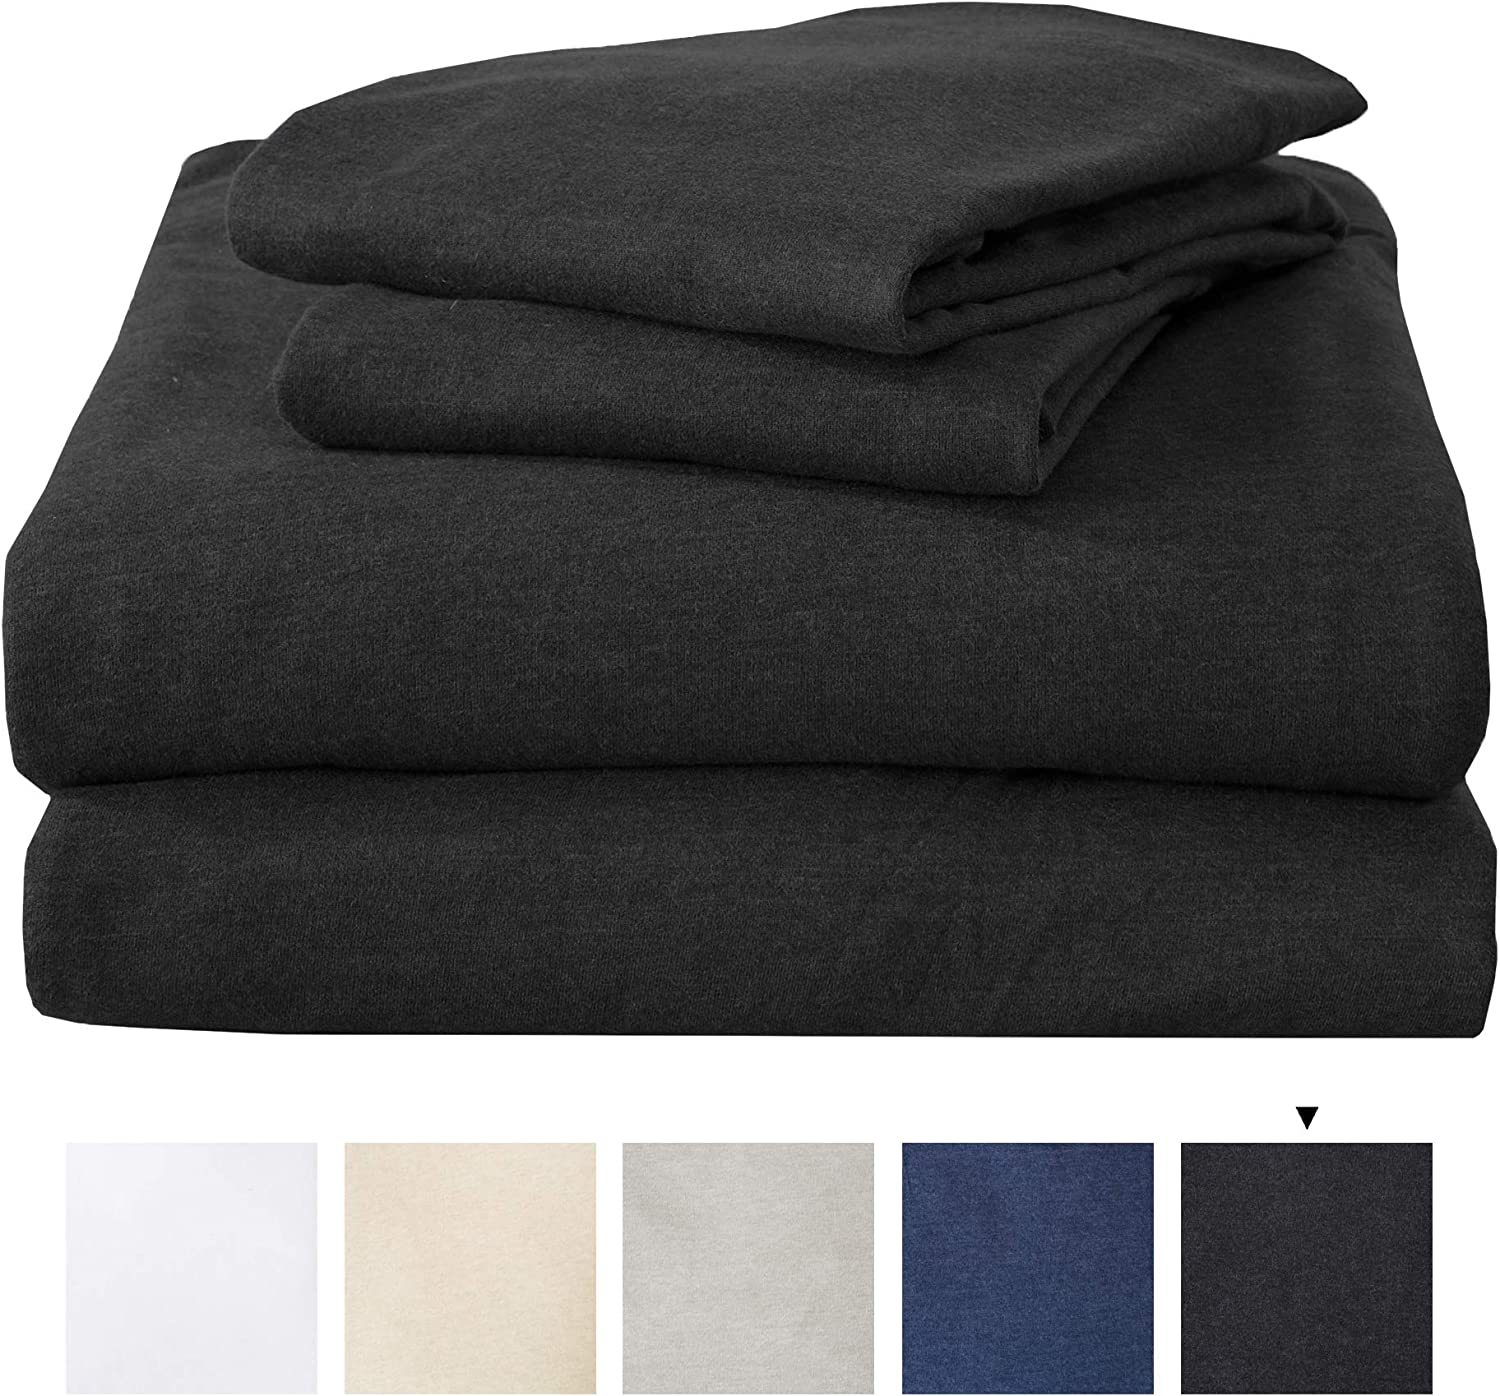 Great Bay Home Queen Jersey Knit Sheets. All Season, Soft, Cozy Flannel Jersey T-Shirt Sheet Set. Cotton Blend Jersey Sheets. Cozy Flex Collection (Queen, Charcoal)